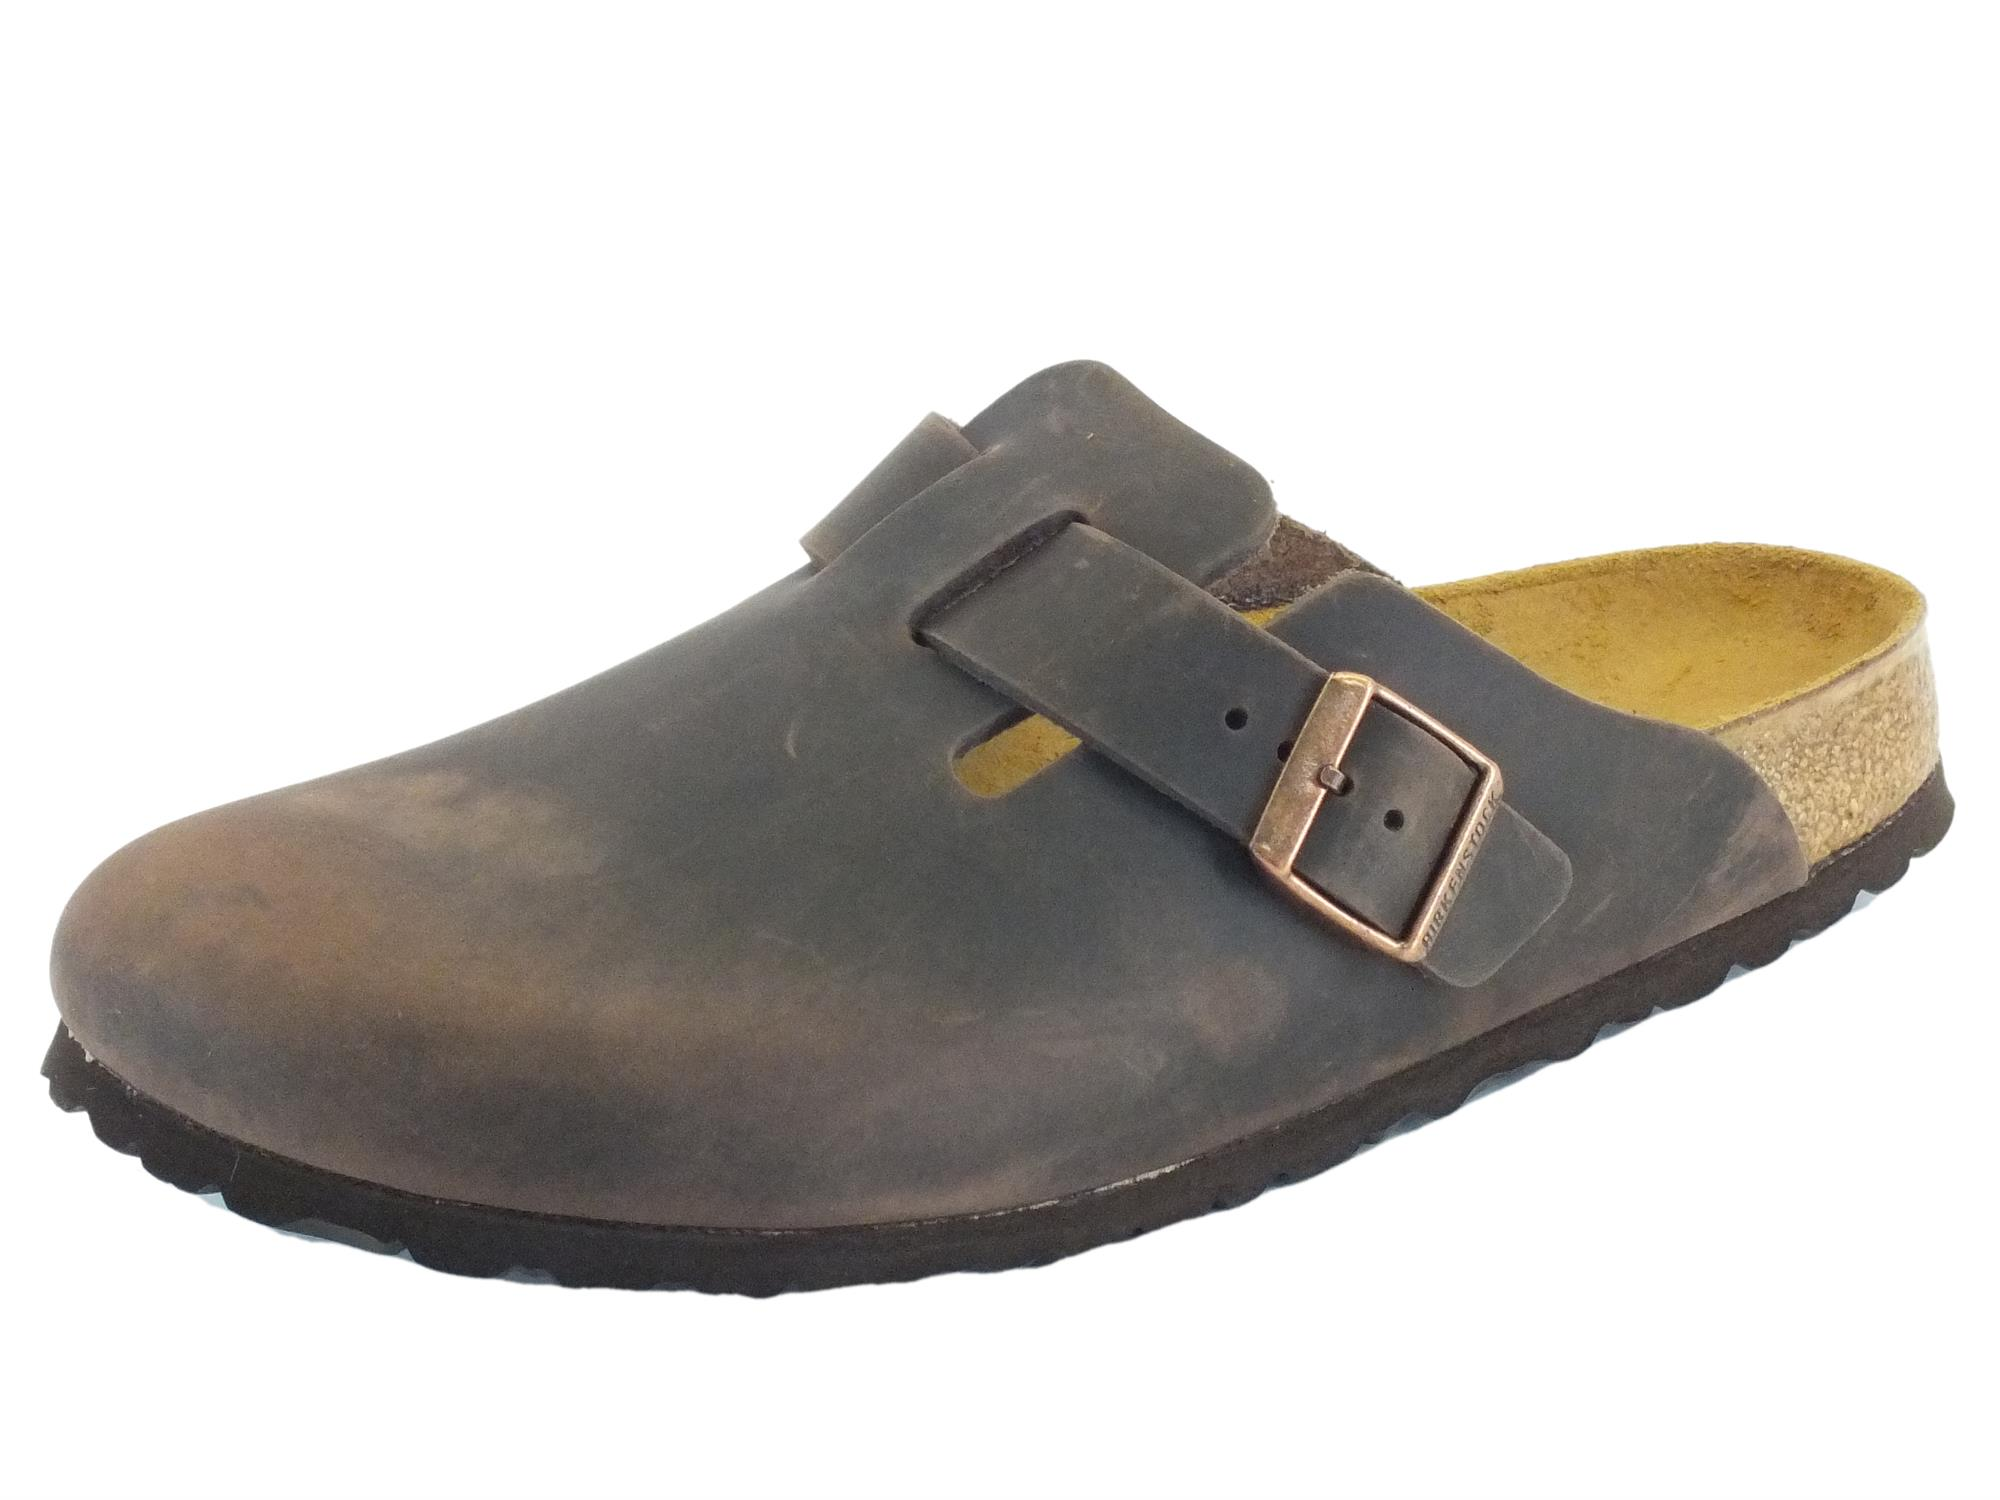 factory authentic 2dba6 adbb9 Sandali Boston Habana Birkenstock per uomo in pelle ingrassata marrone